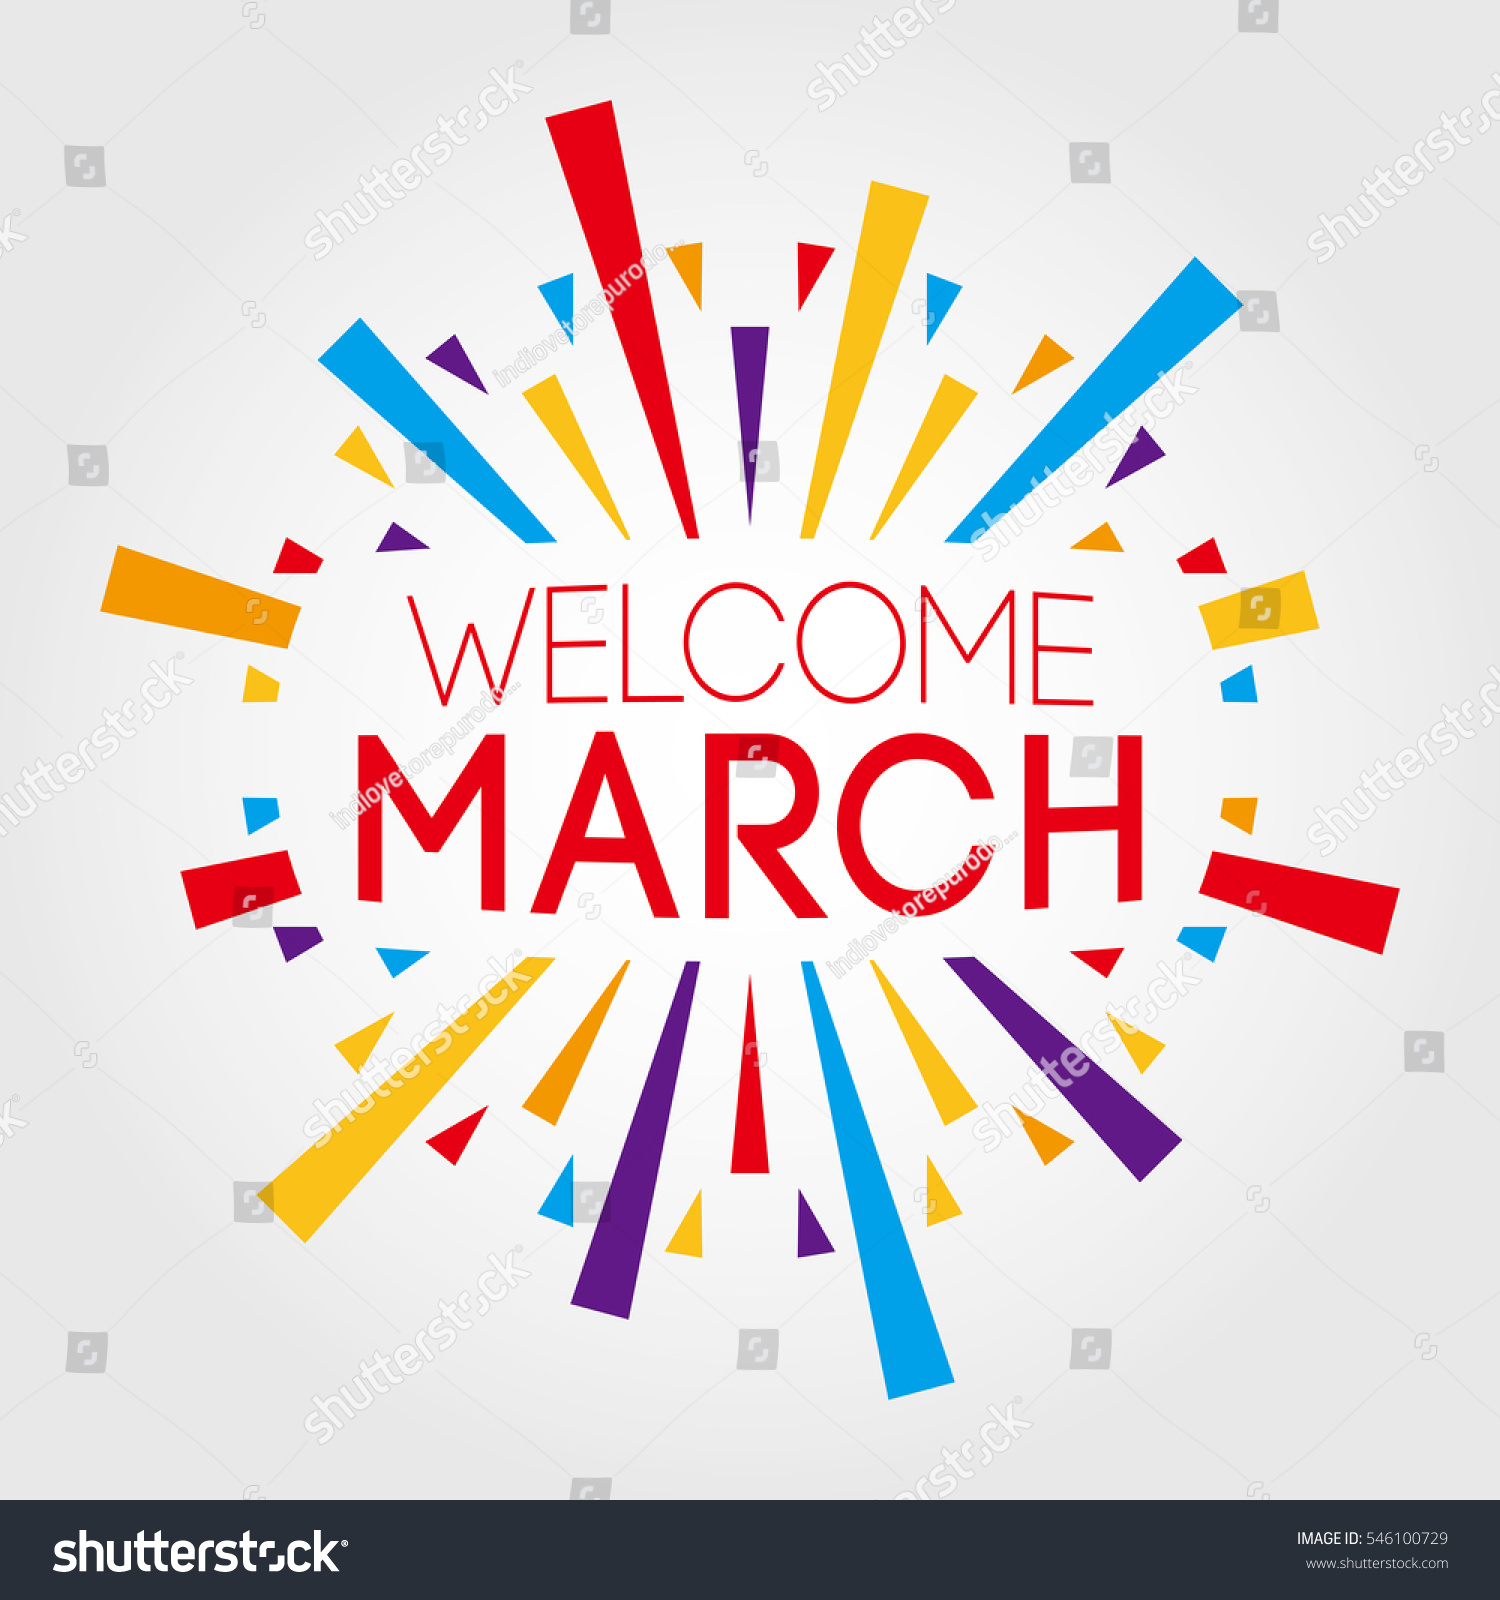 Welcome march vector illustration poster banner stock vector welcome march vector illustration poster banner stock vector 546100729 shutterstock pronofoot35fo Gallery